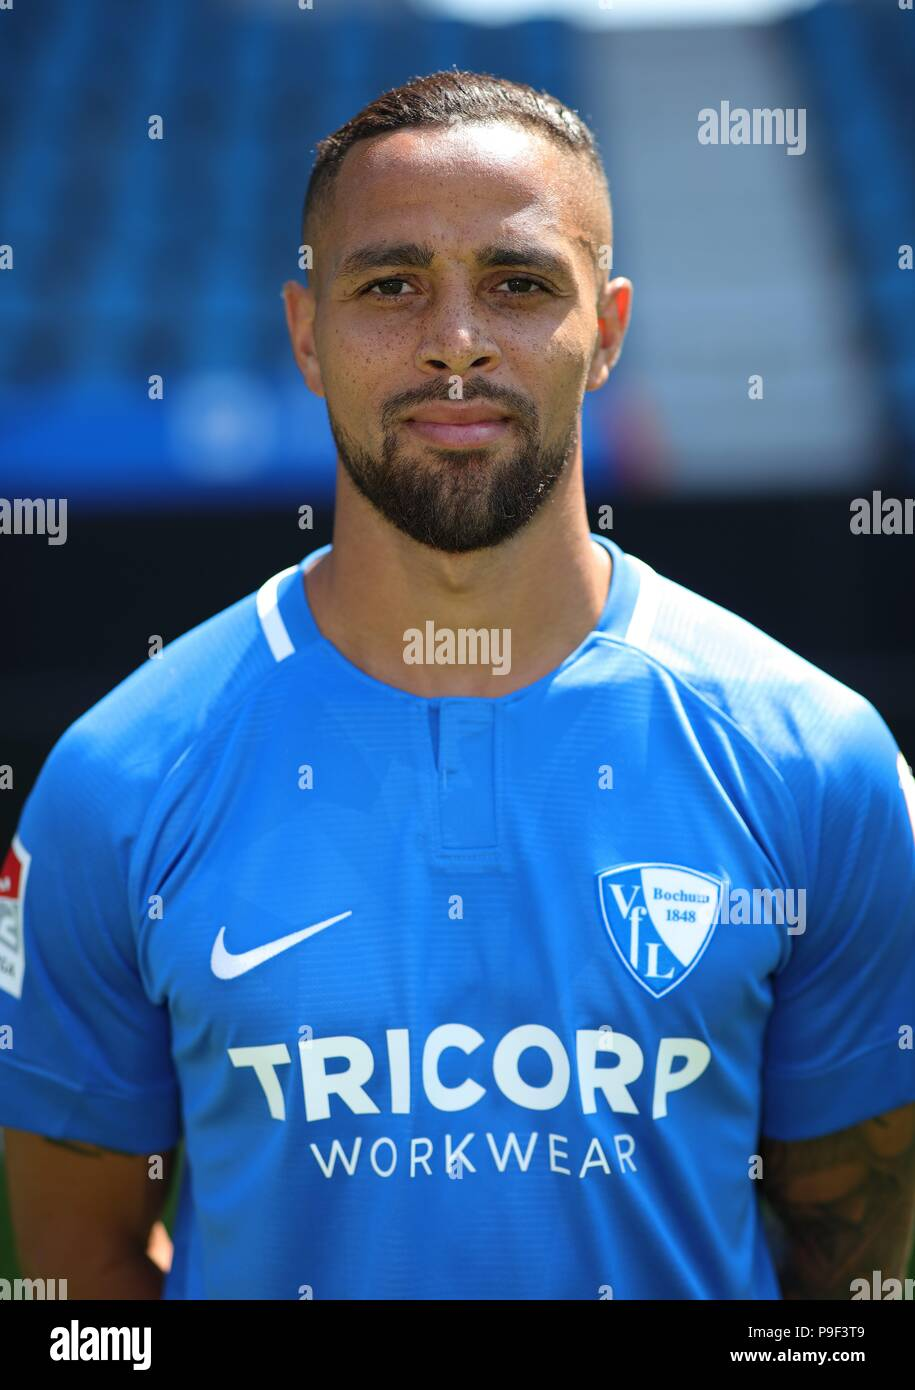 firo: 17.07.2018, football, 2.Bundesliga, season 2018/2019, VfL Bochum, photo shoot, portraits, portrait, Sidney SAM, | usage worldwide - Stock Image